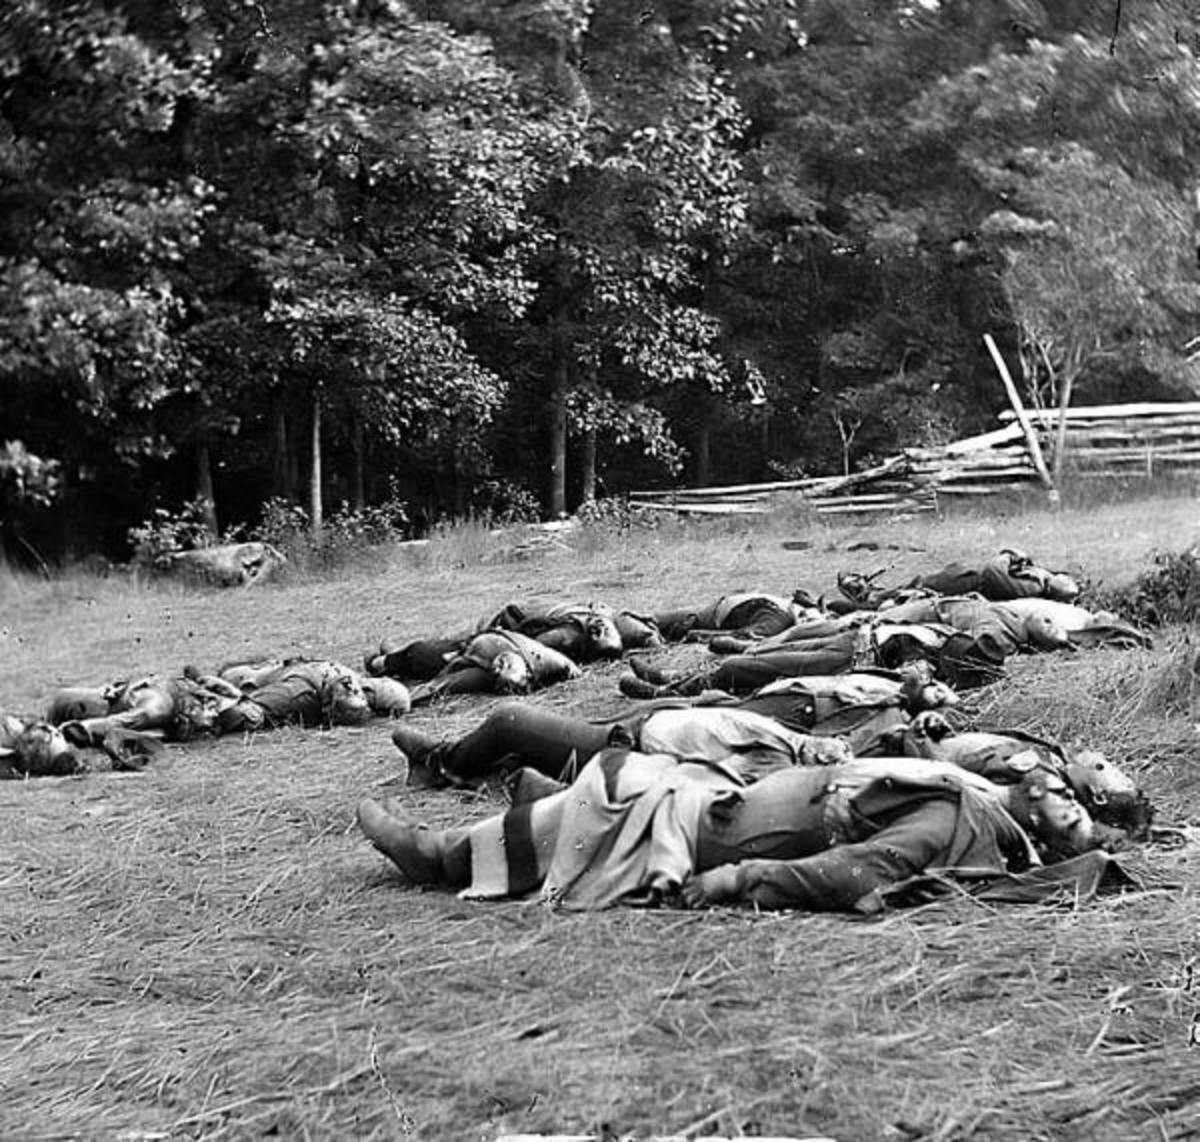 Enemy dead in a V burial formation at Gettysburg, PA